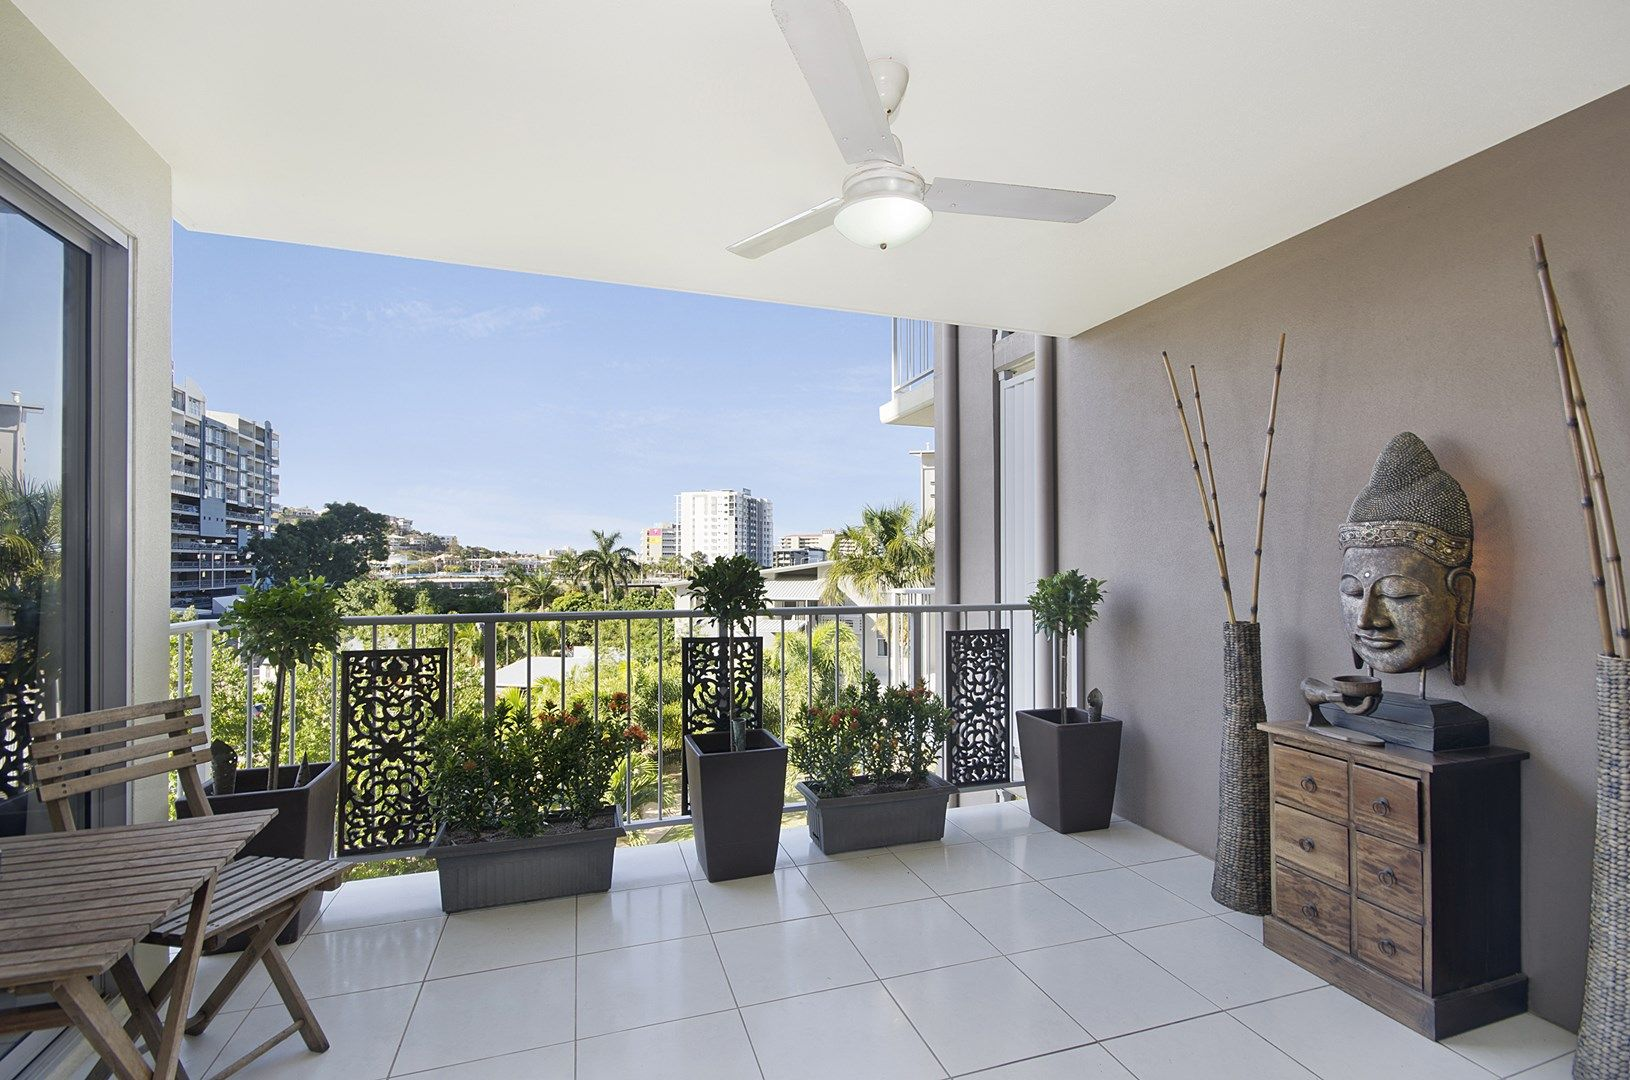 19/51-69 Stanley Street, Townsville City QLD 4810, Image 0